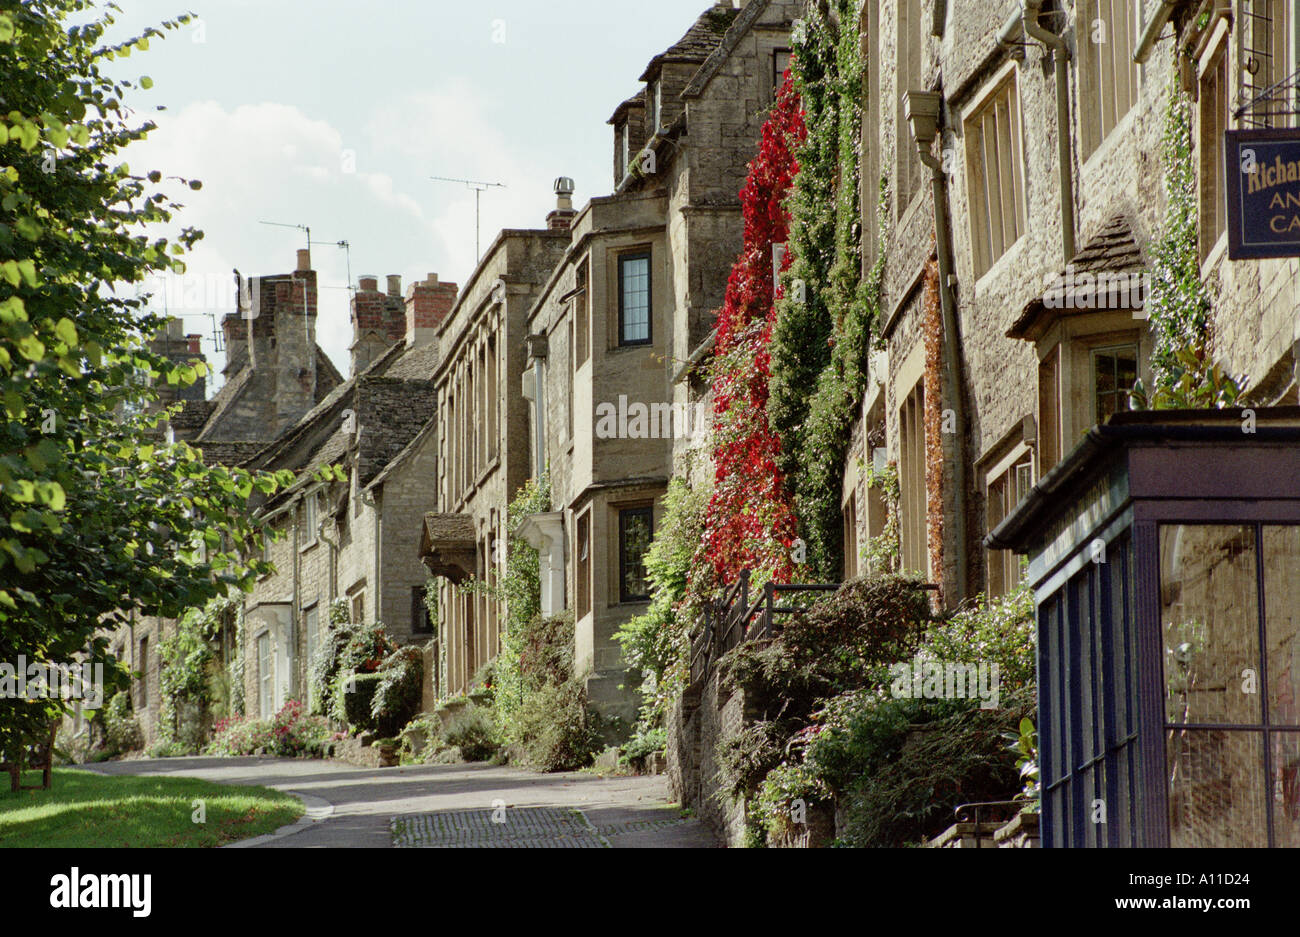 Street scene in Burford, Cotswolds, Oxfordshire, England, UK, Europe - Stock Image